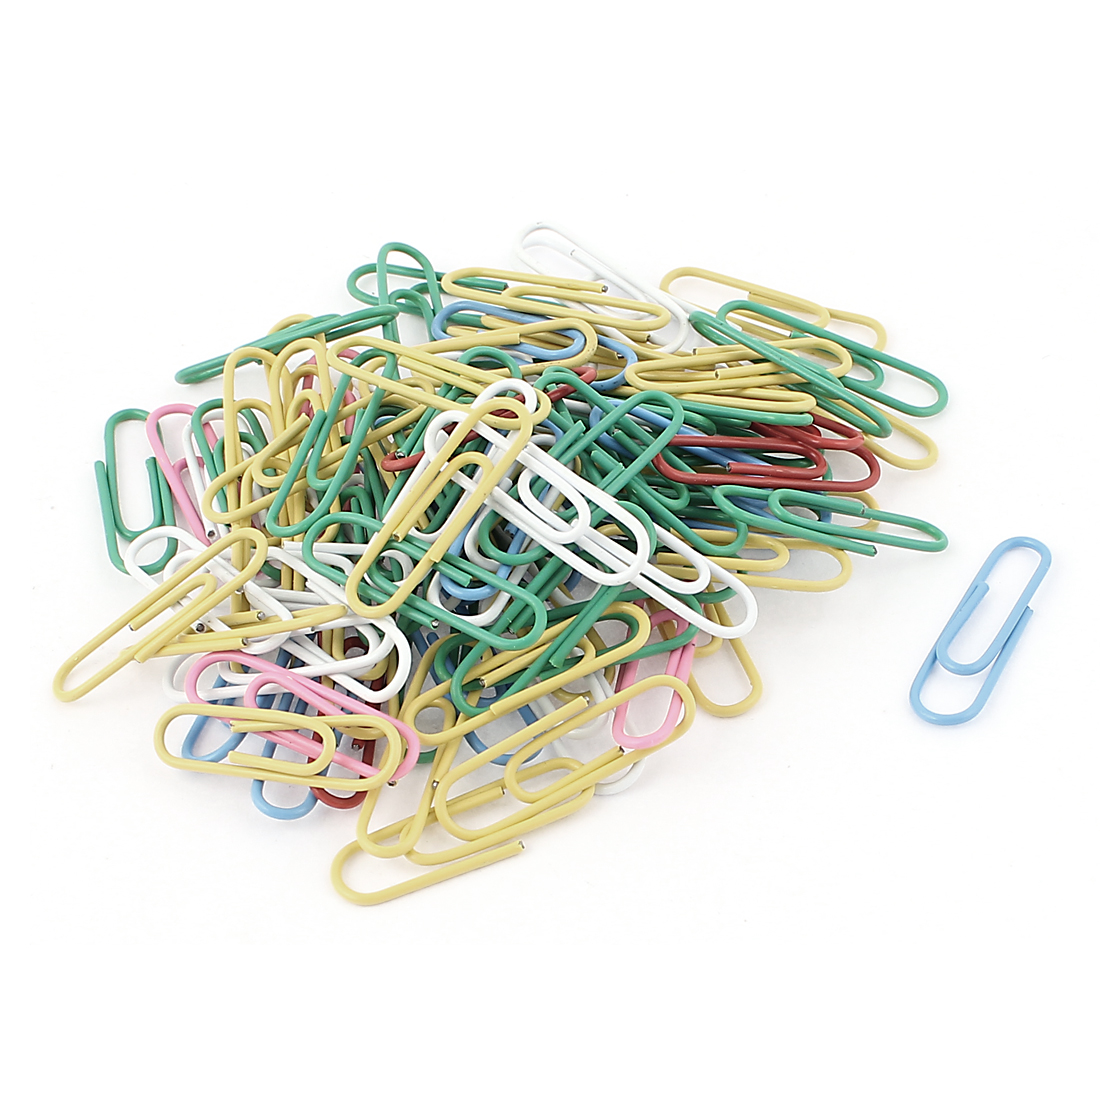 Desk Office Supplies Color Paper Clips 28mm Length 100pcs